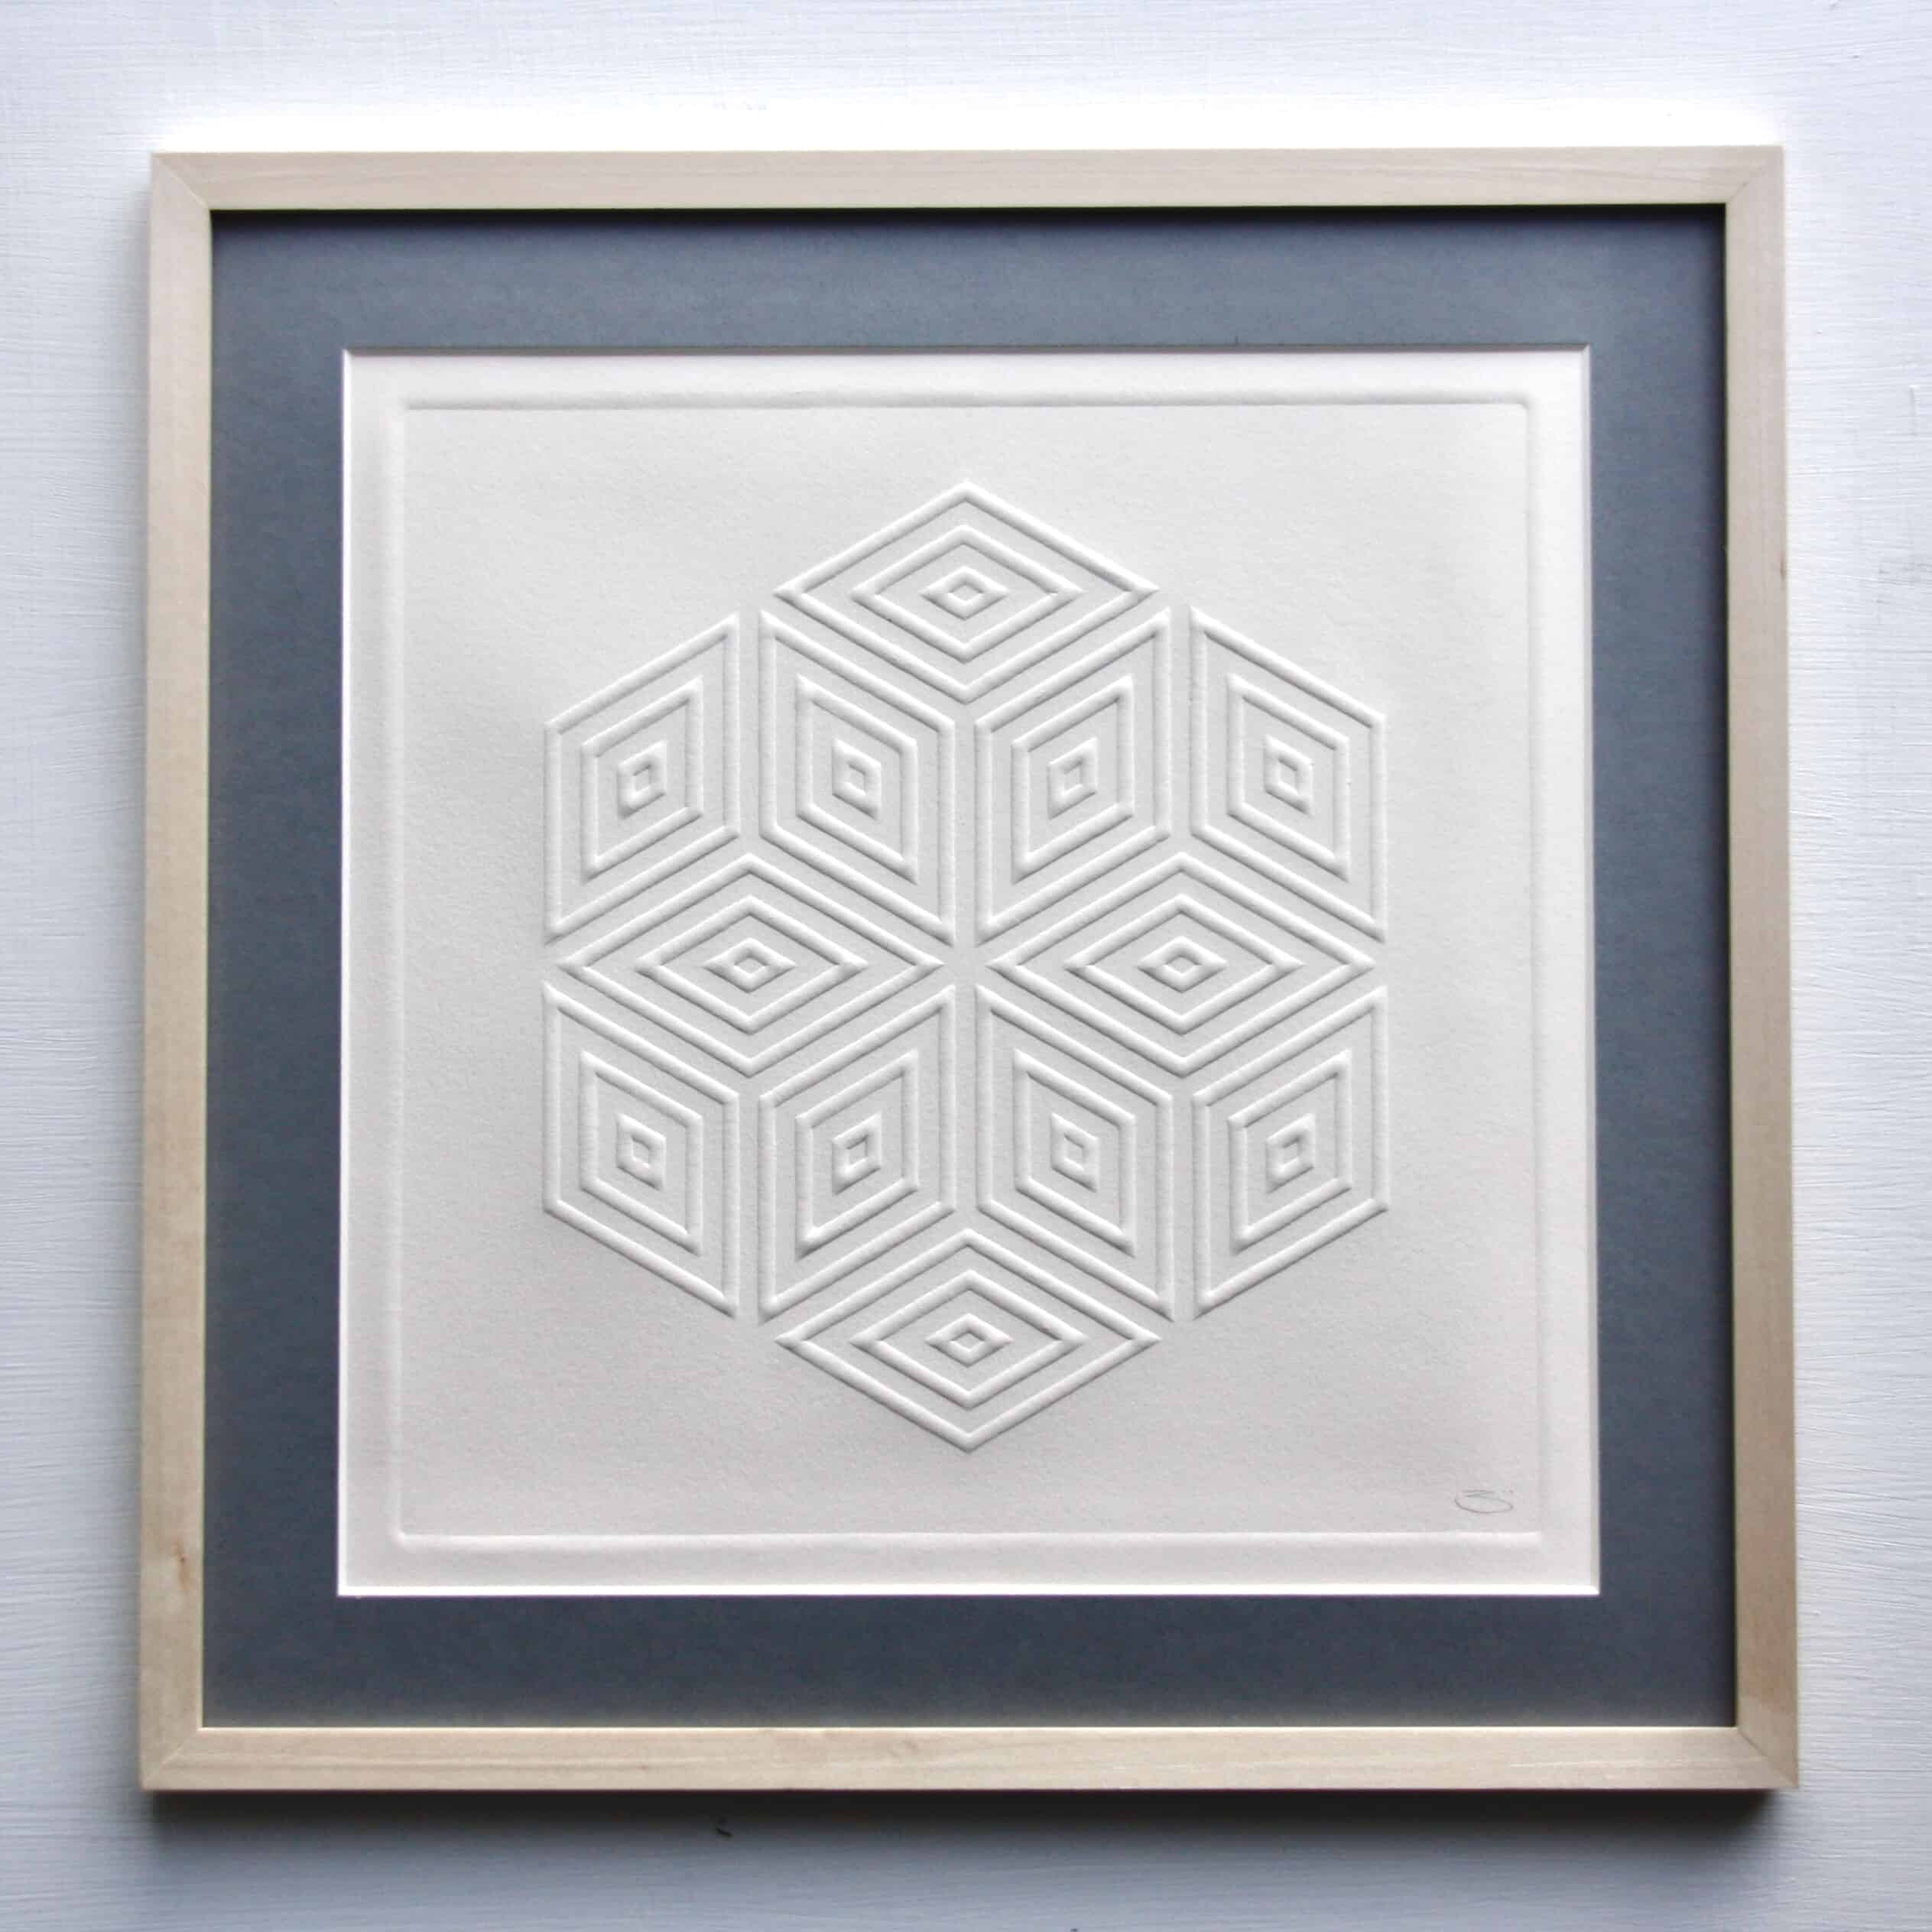 Paper pressed into the stone carving to make a raised embossing. Pattern is a geometric shape based on a diamond